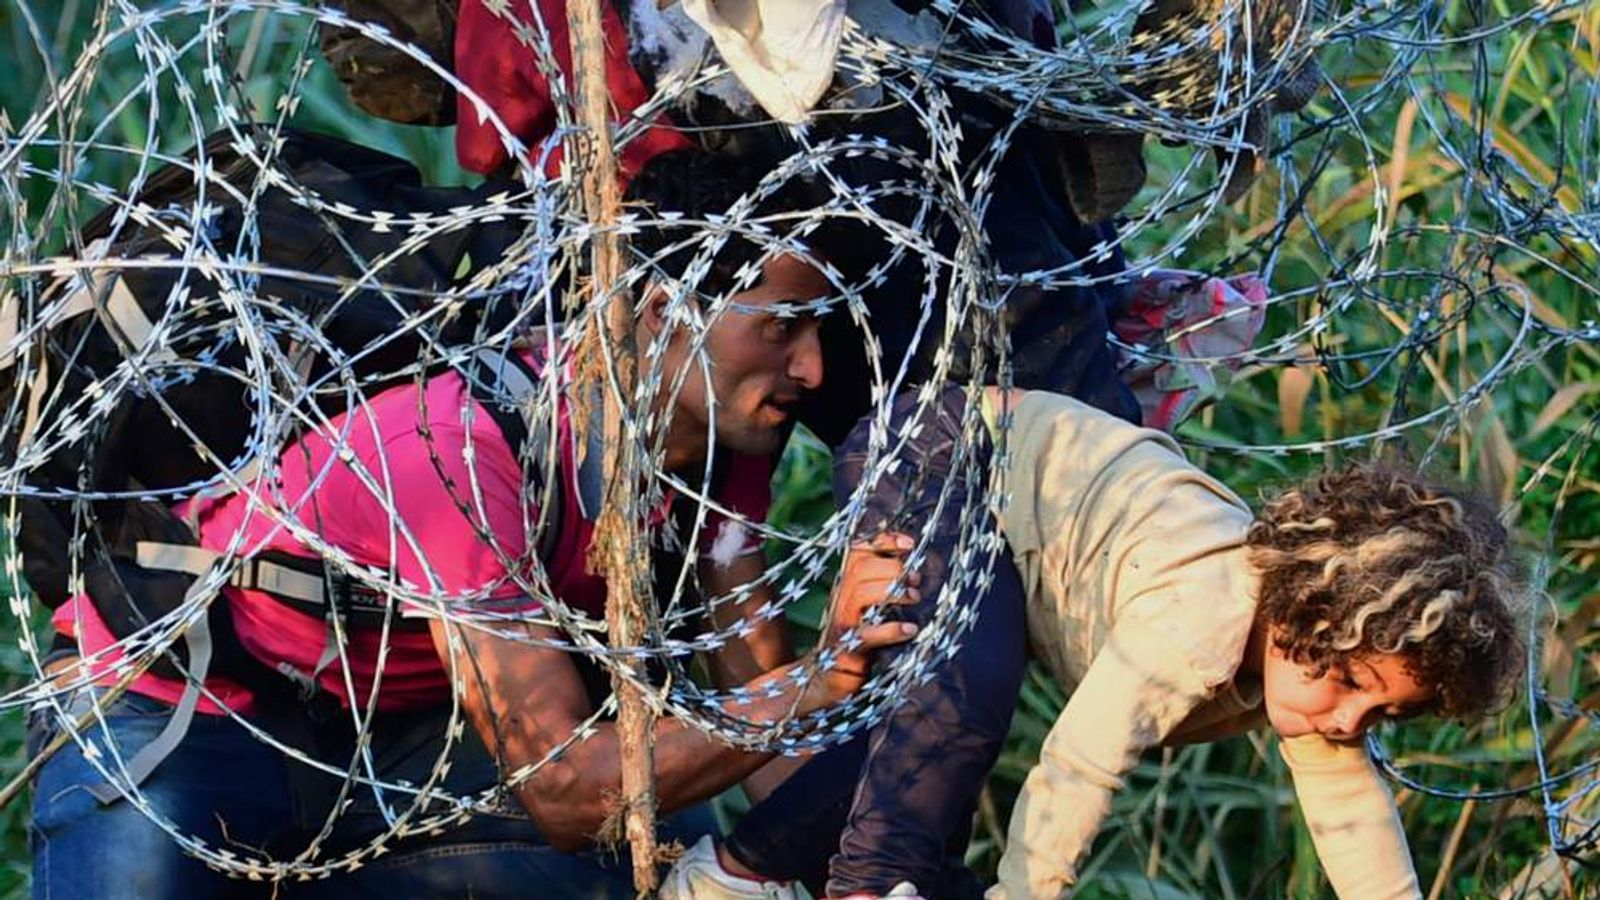 A young girl of a migrant's family is helped by her father as they creep under a barbed fence near the village of Roszke, at the Hungarian-Serbian border.